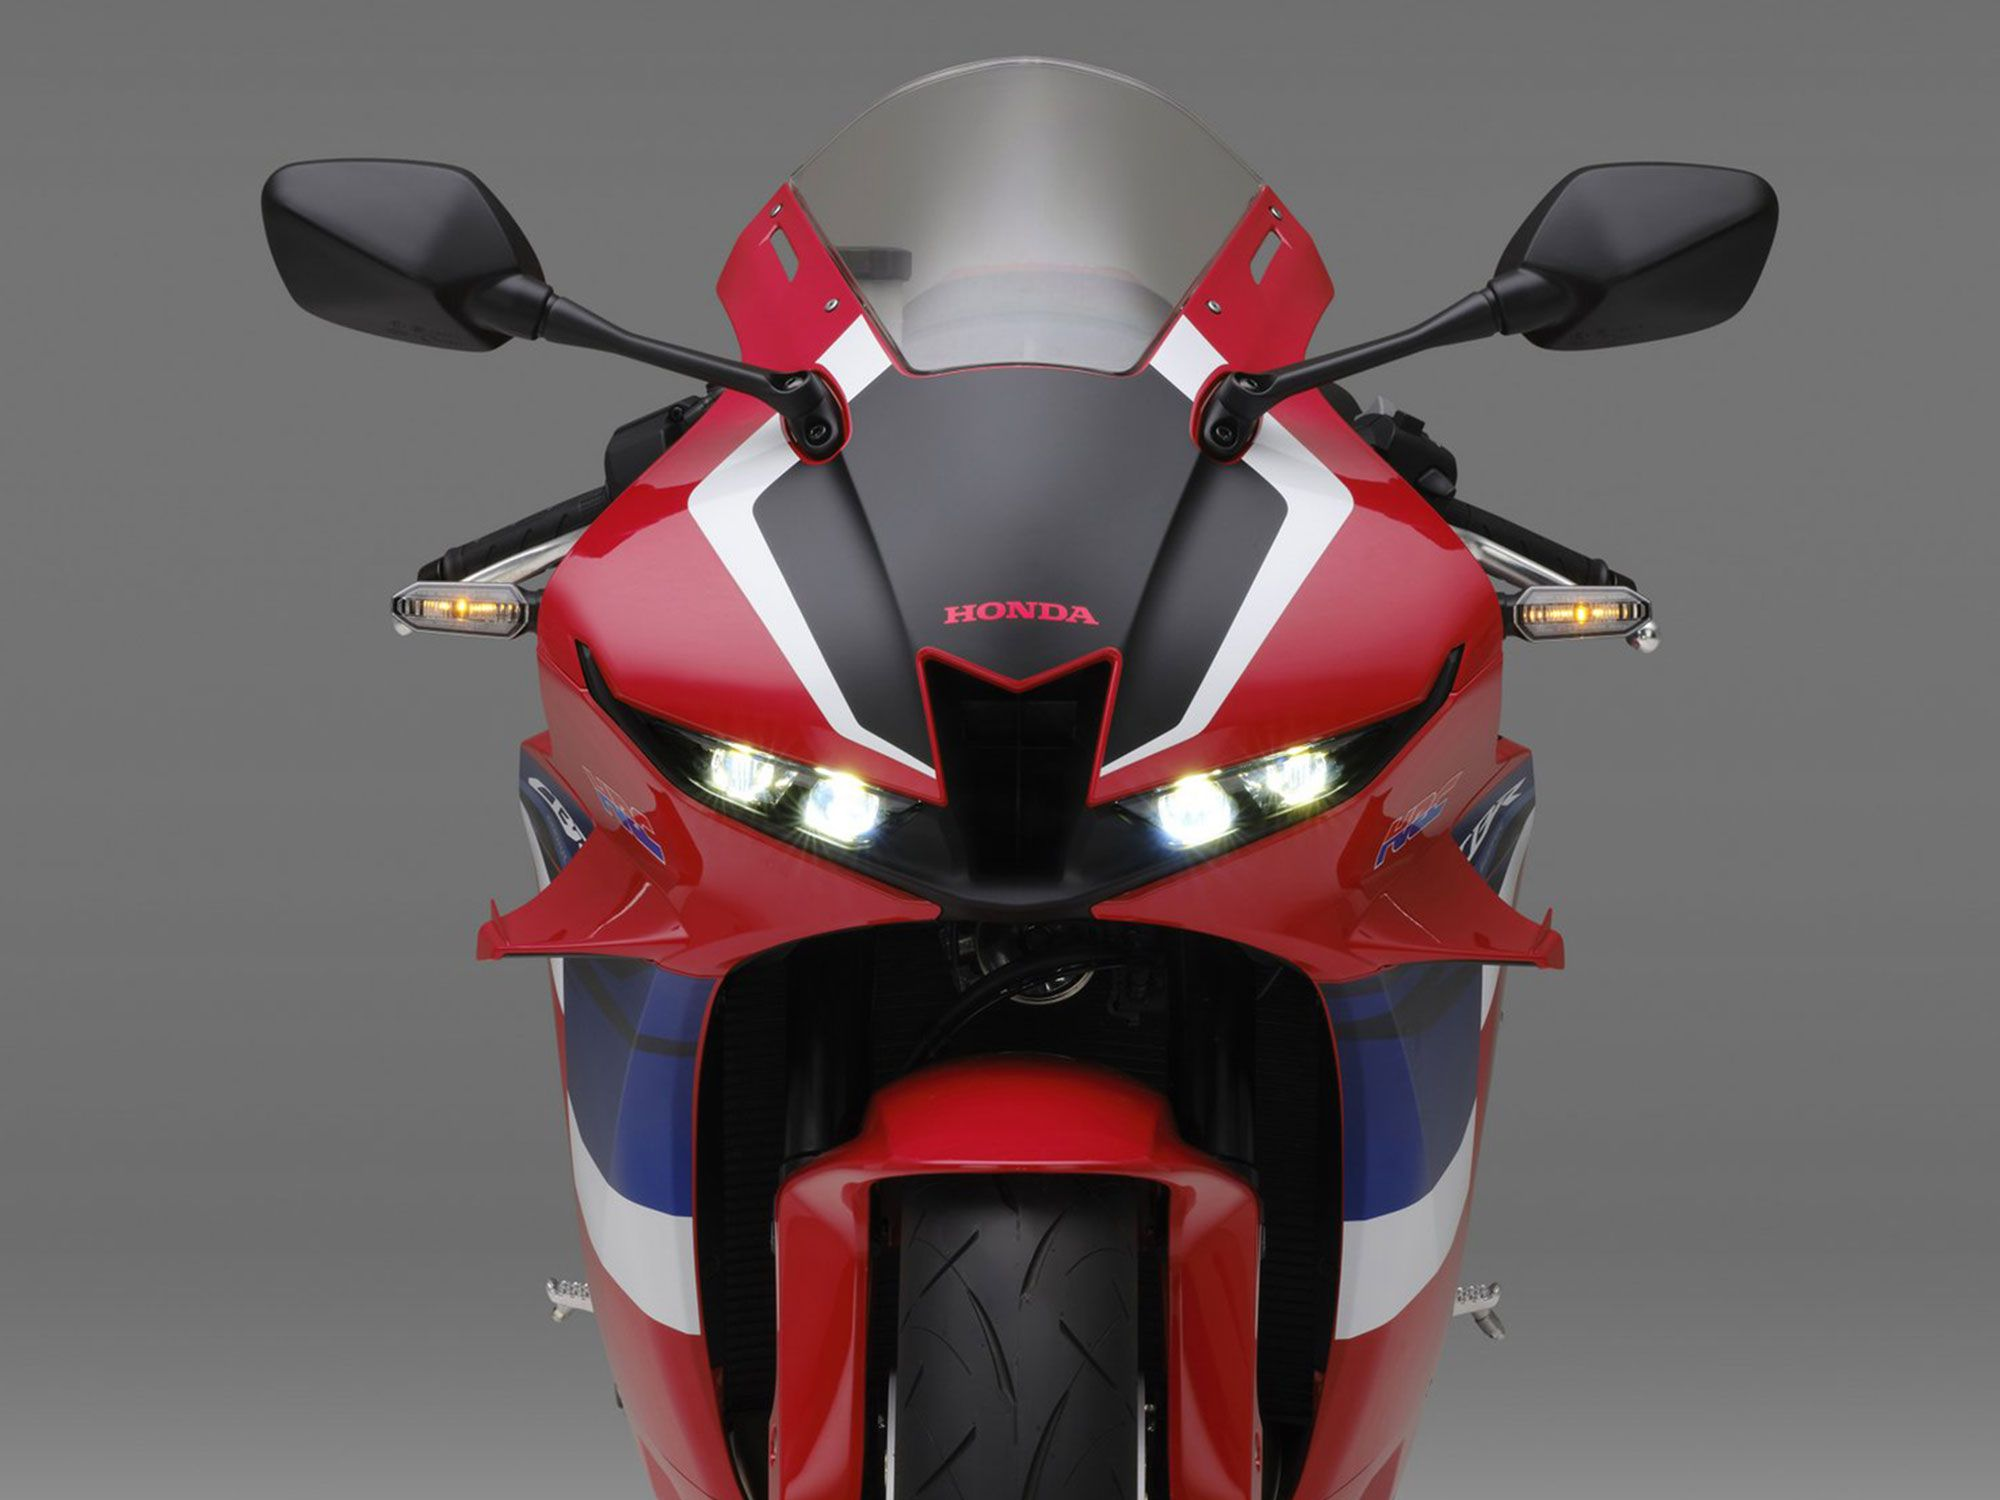 Squintier, now—LED lights and a revised fairing are new for 2021.